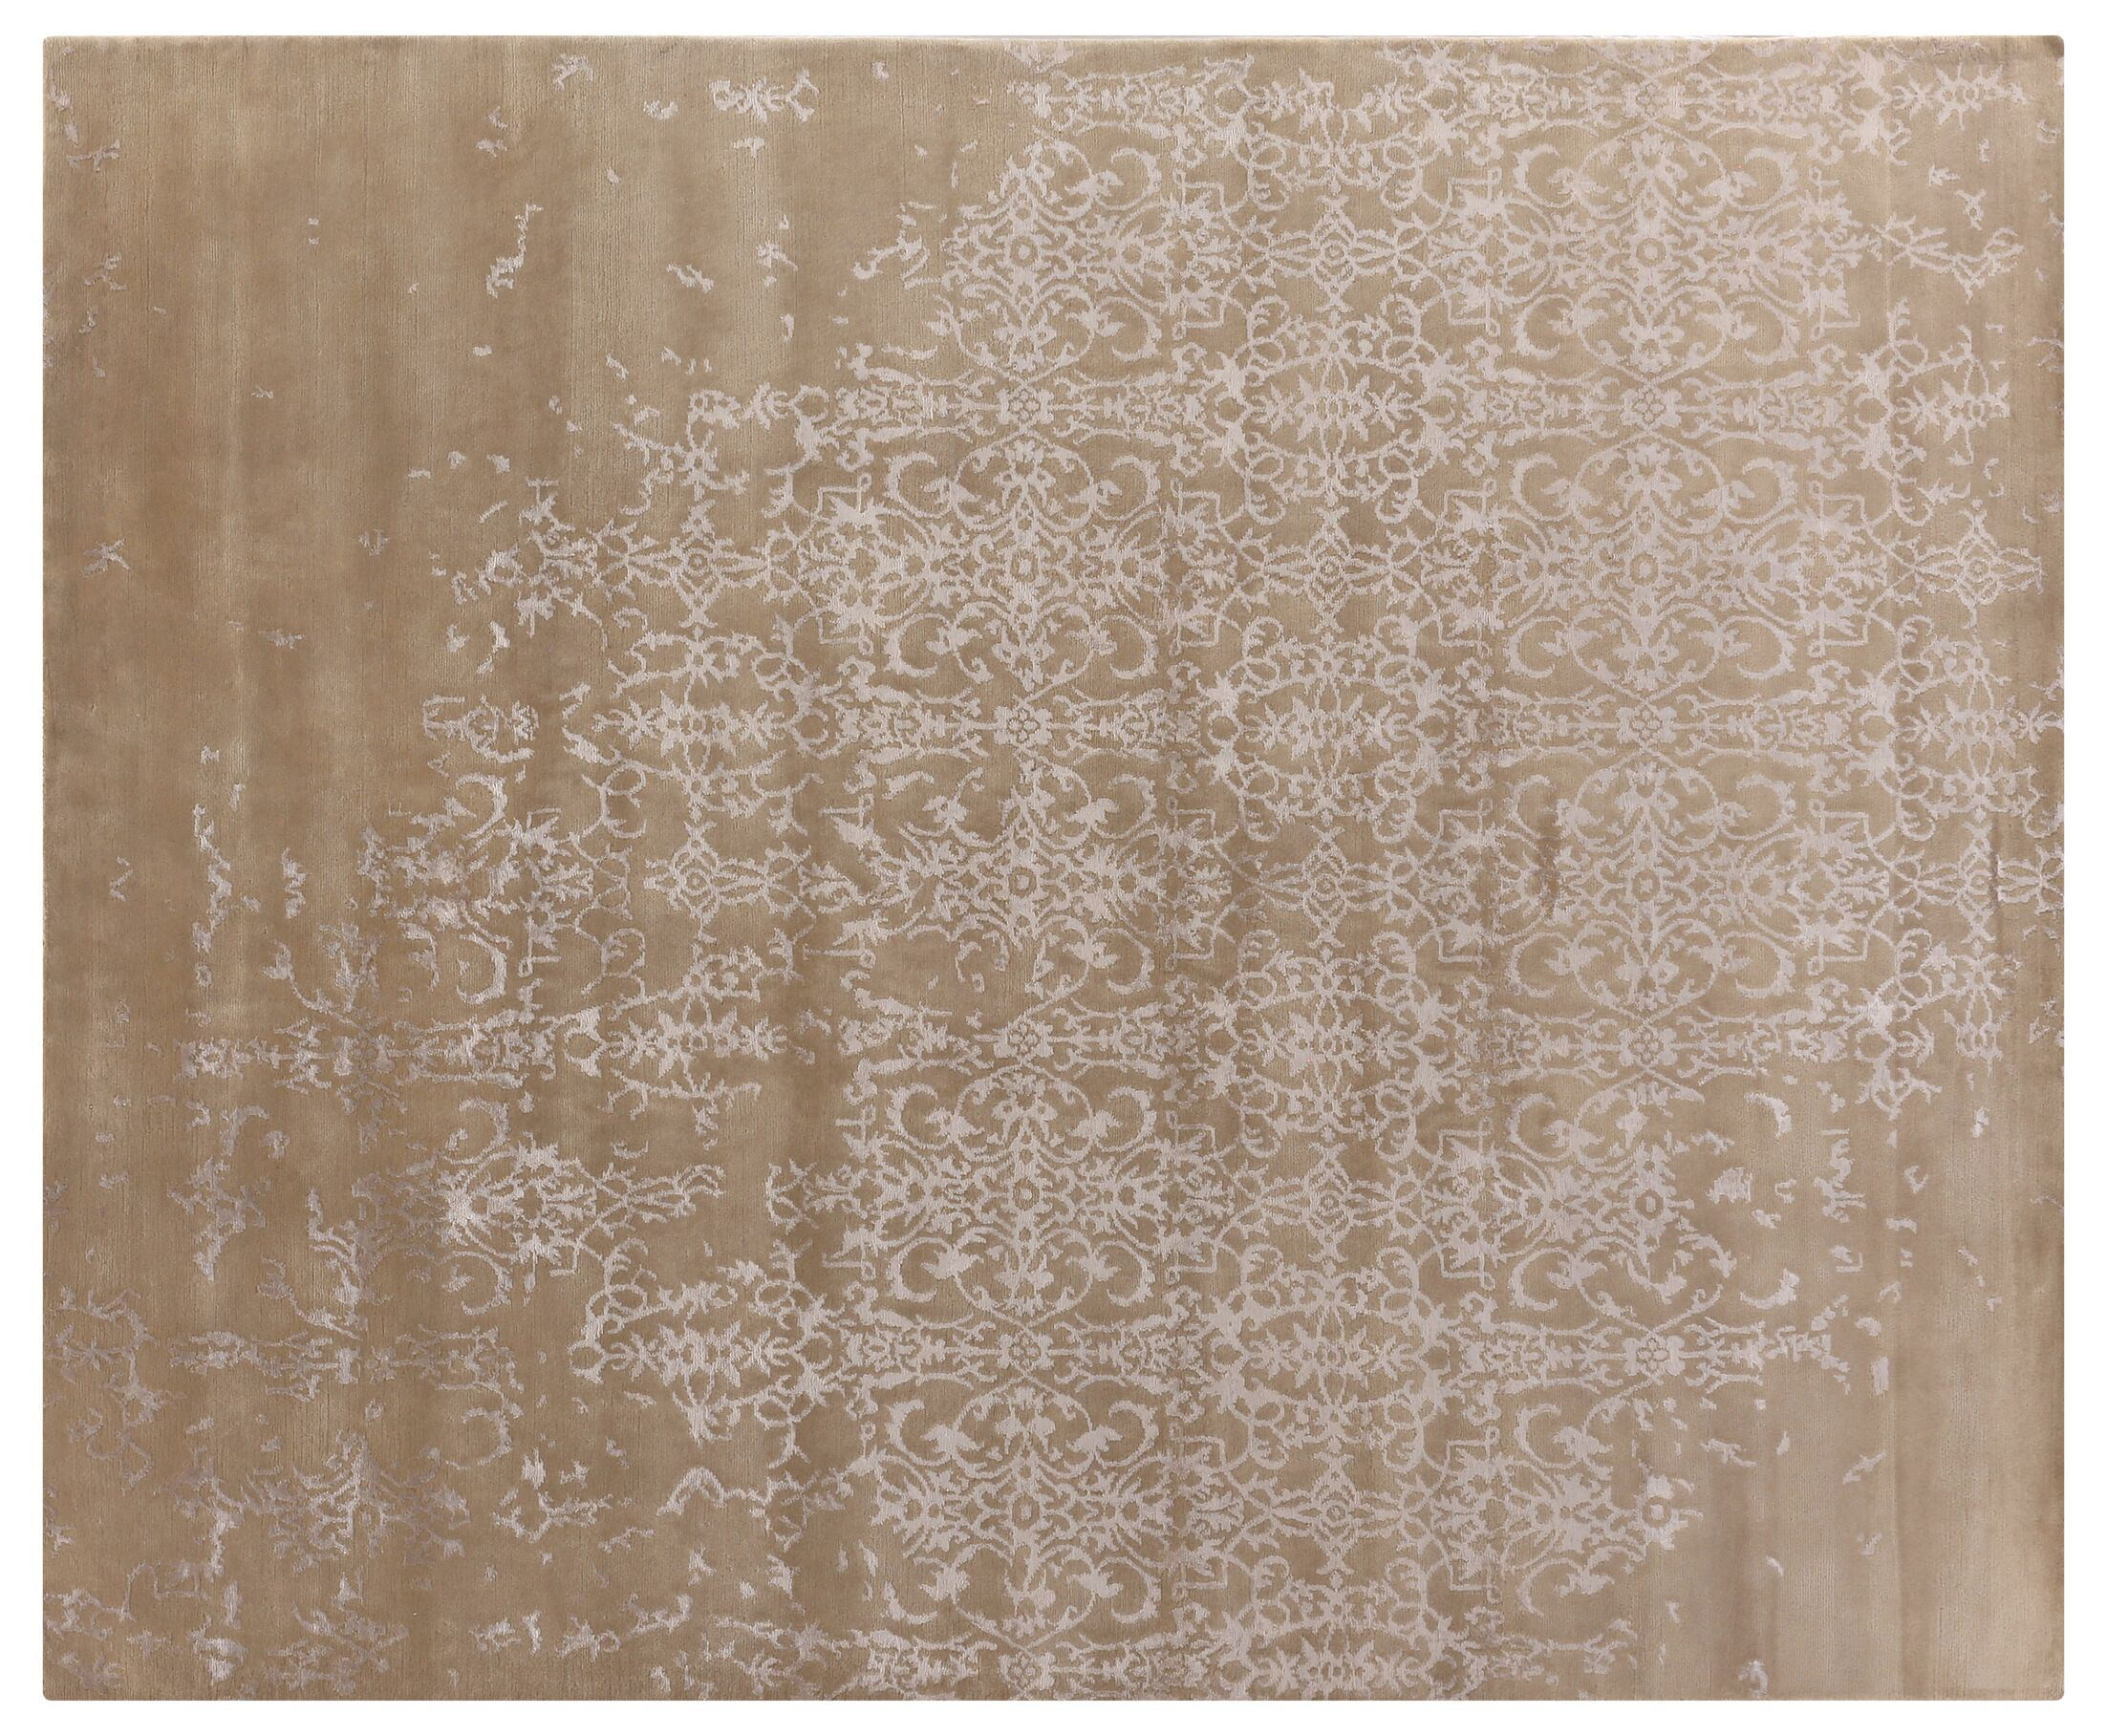 Fine Hand-Knotted Light Beige Area Rug